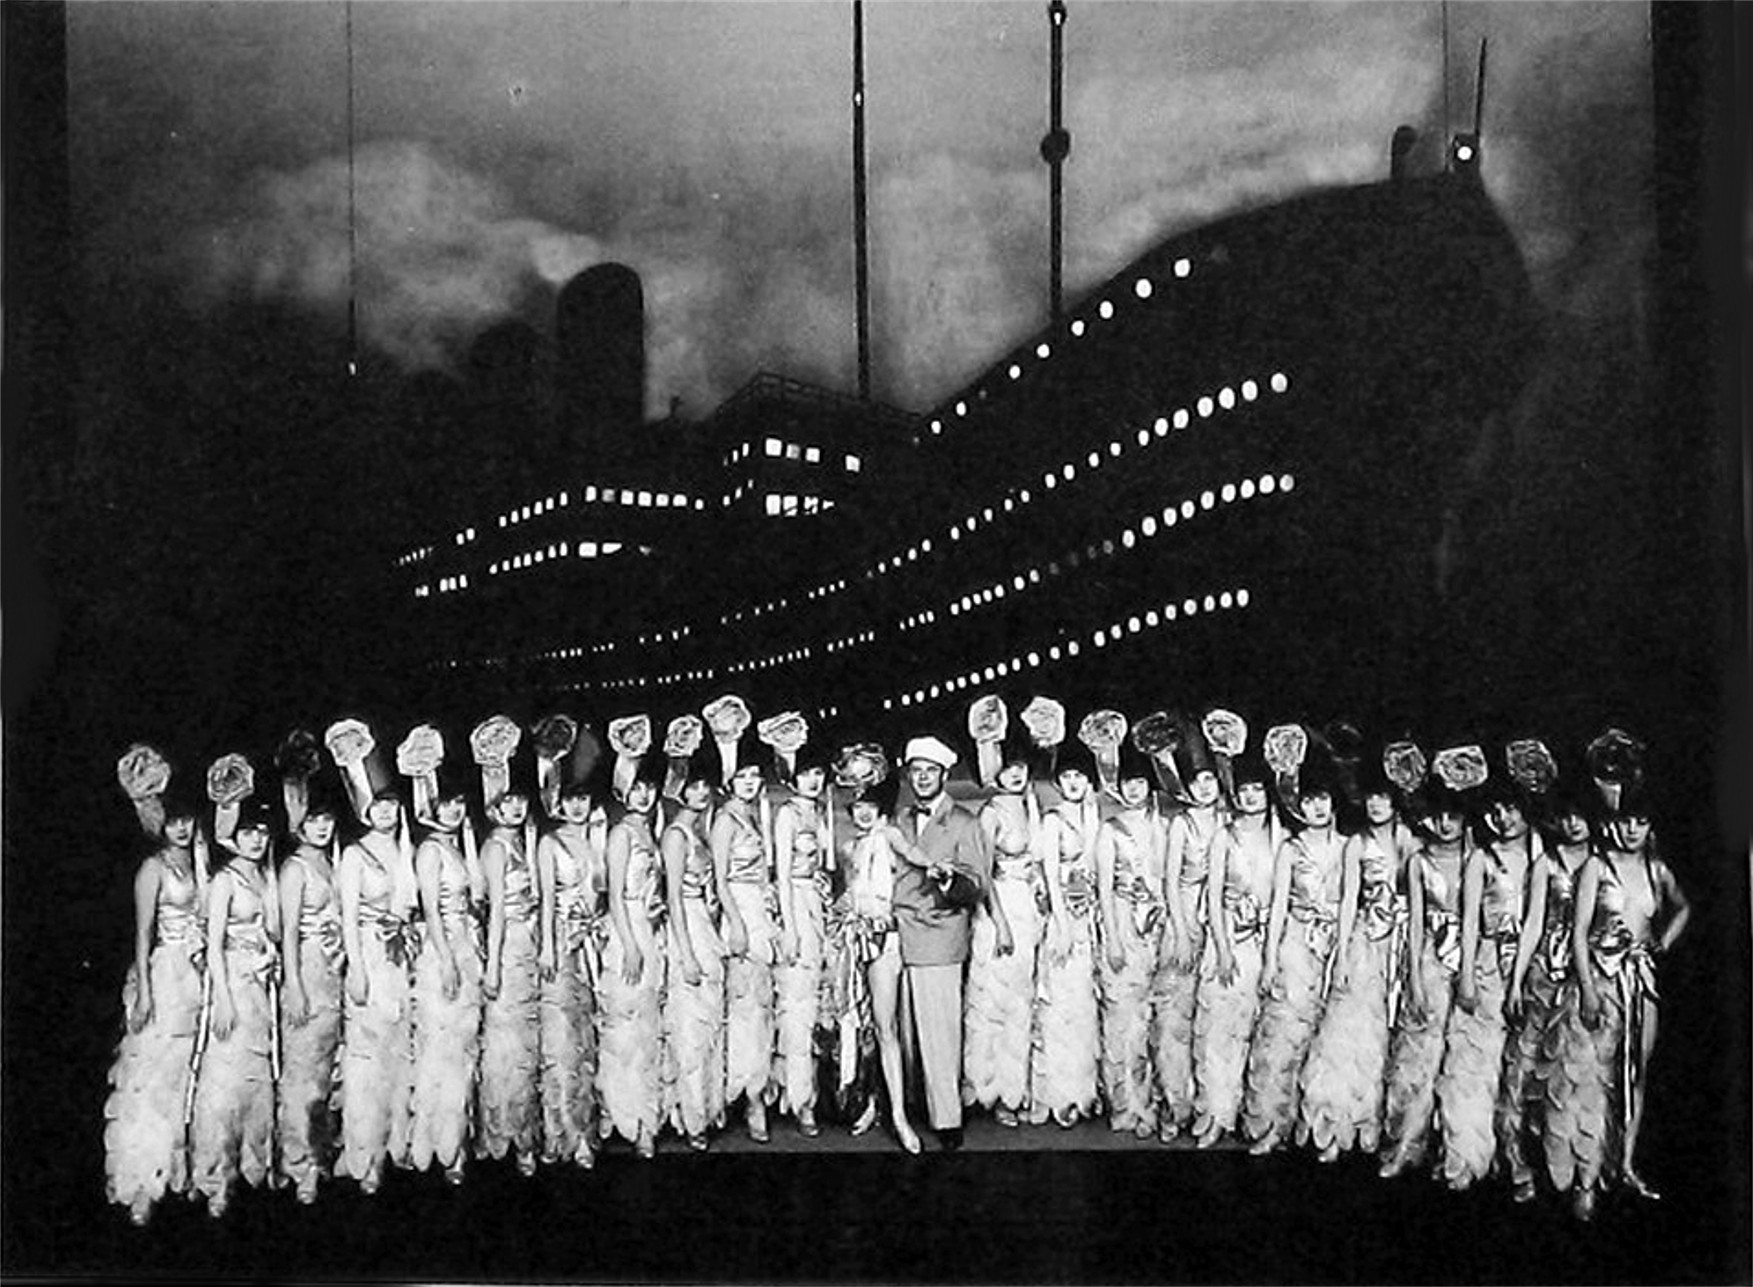 """The finale of the Erik Charell production of """"The Mikado"""" at Großes Schauspielhaus in Berlin. (Photo: Operetta Research Center Archive)"""